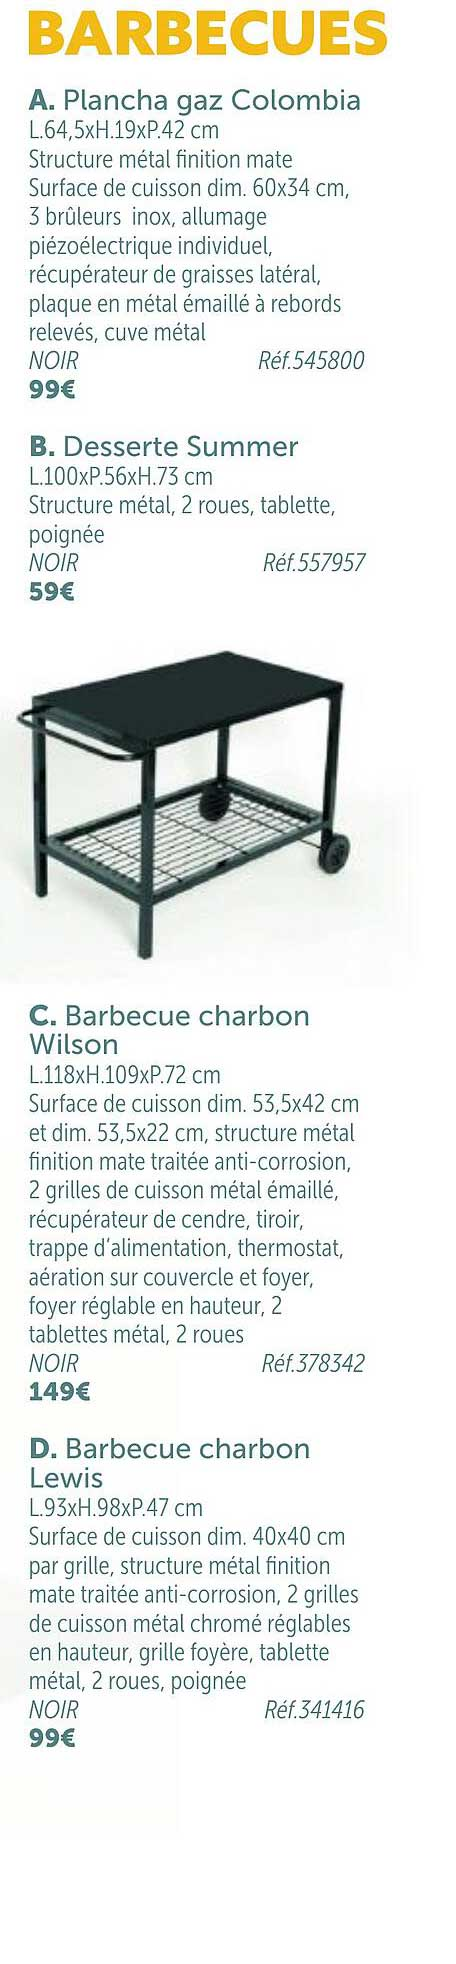 GiFi Barbecue : Plancha Gaz Colombia, Barbecue Charbon Wilson, Barbecue Charbon Lewis